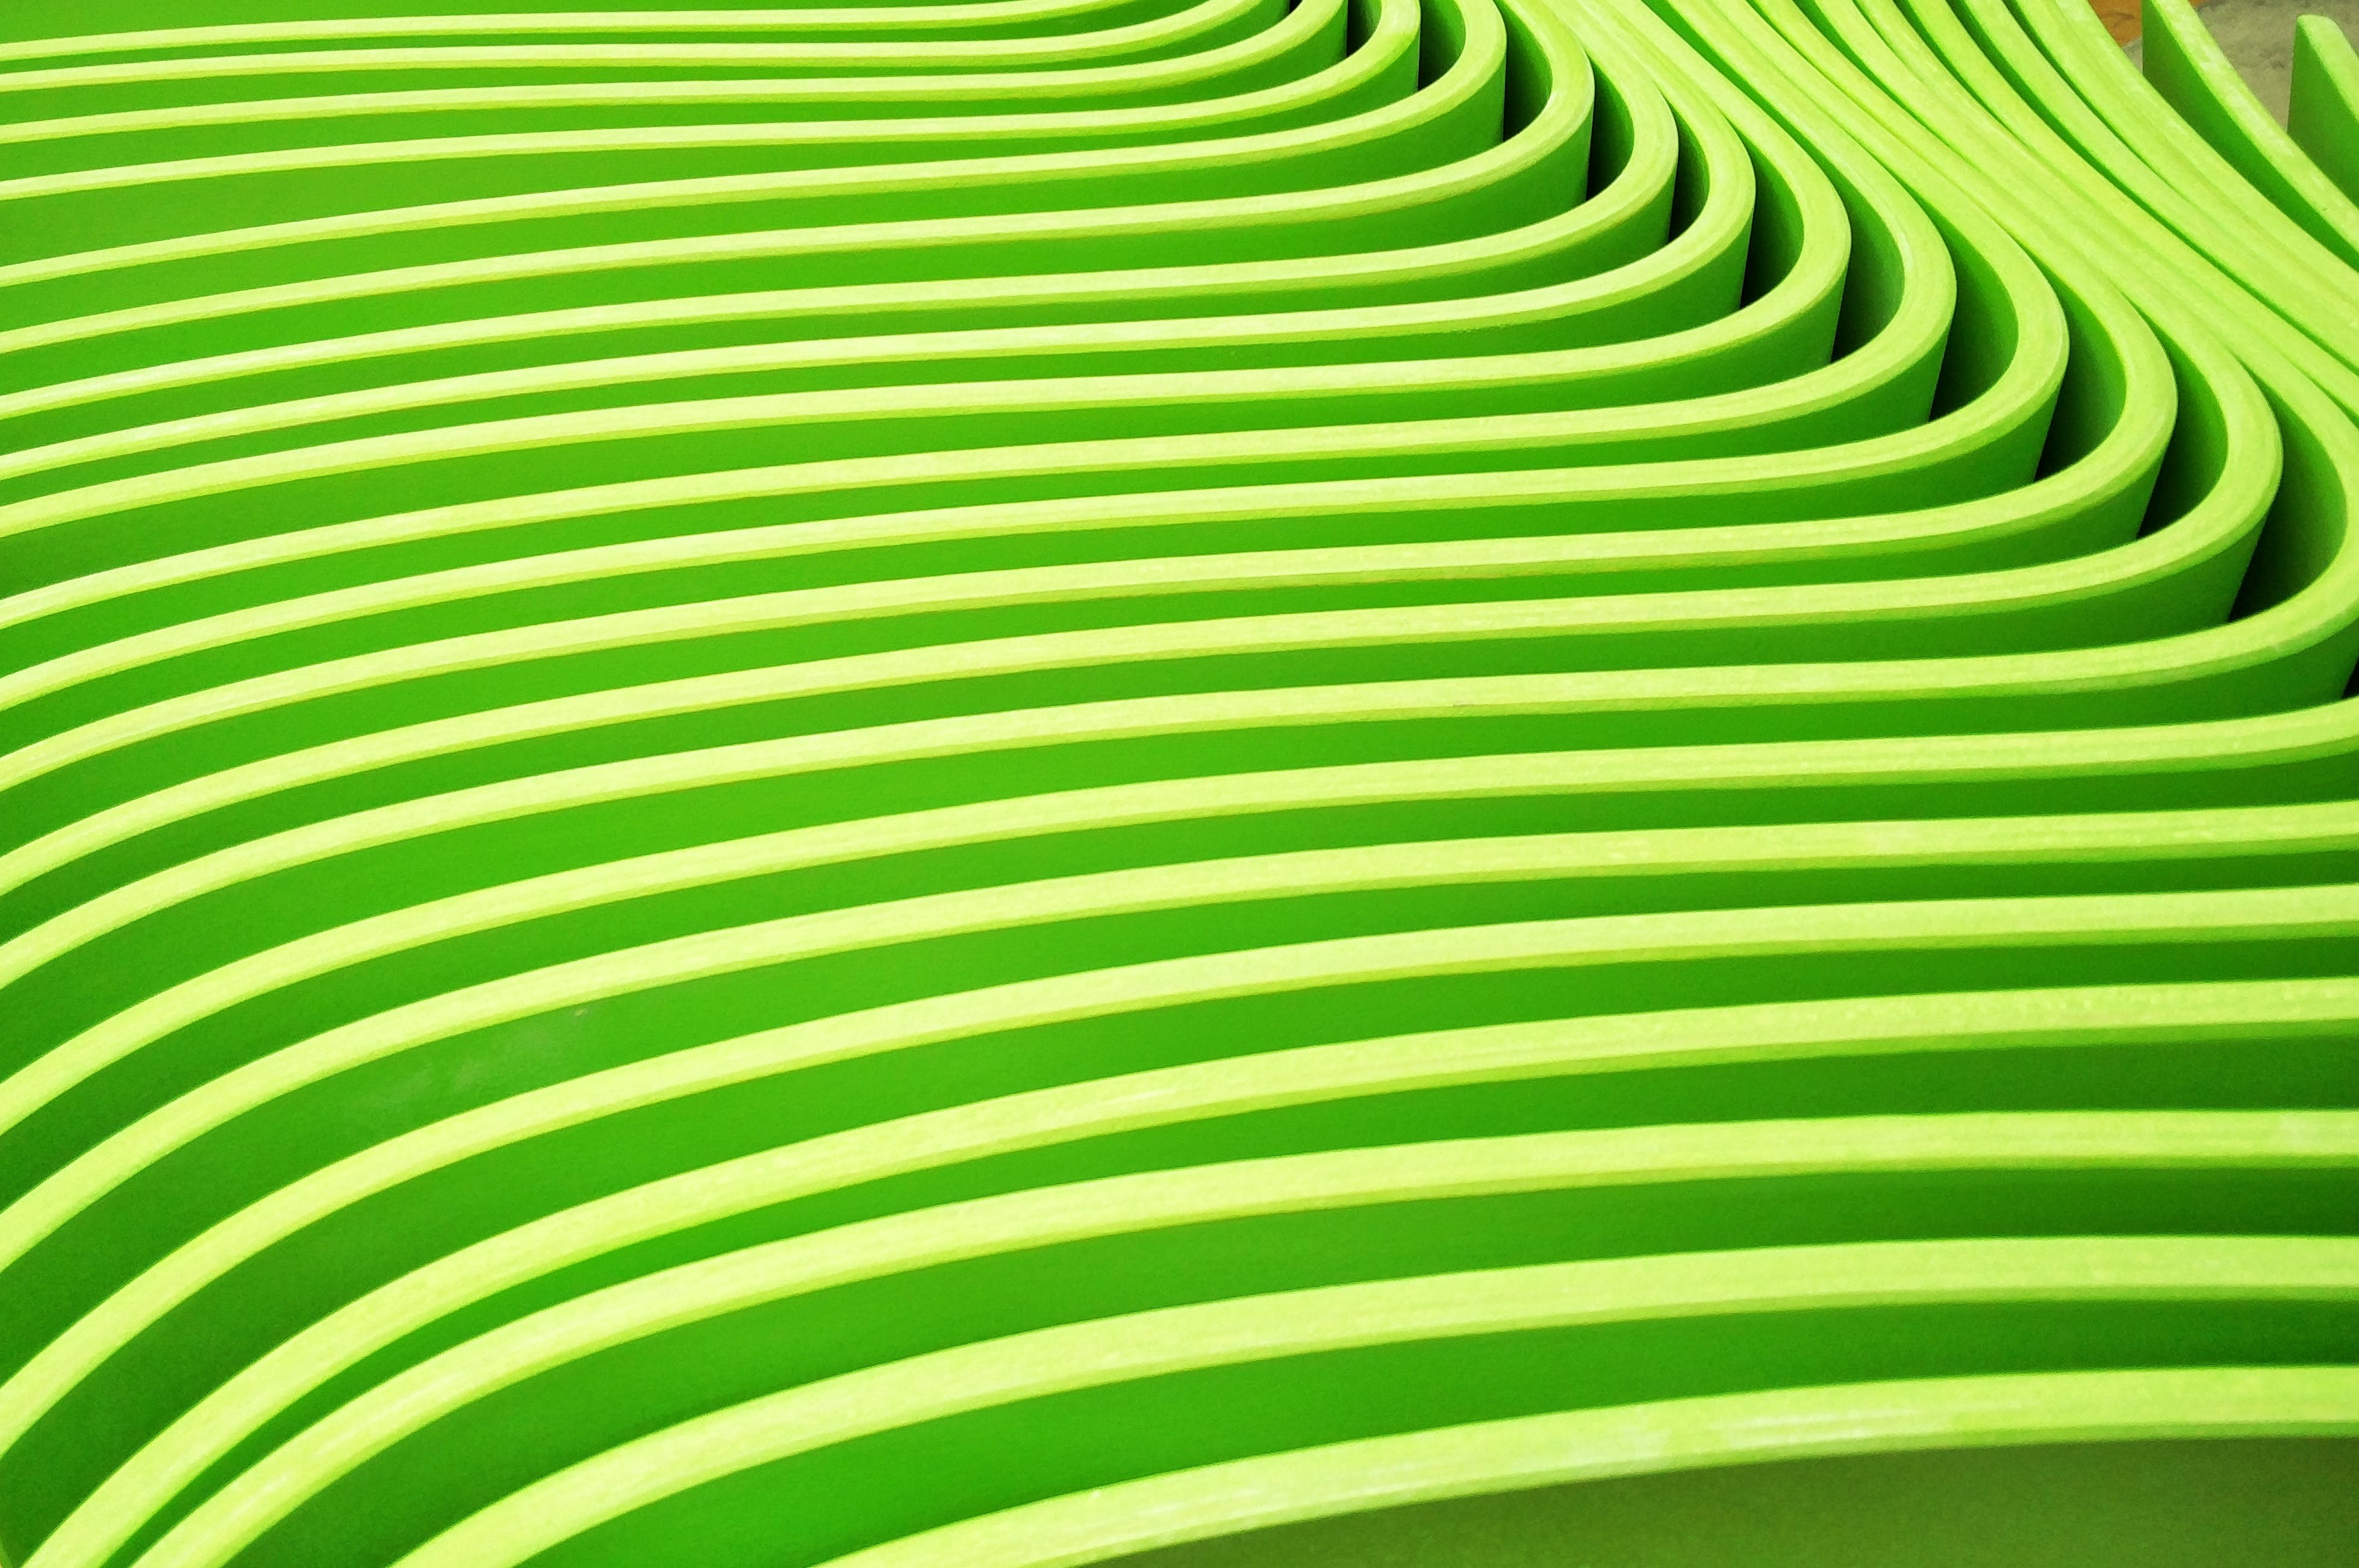 Free stock photo of abstract, curved, geometric pattern, green